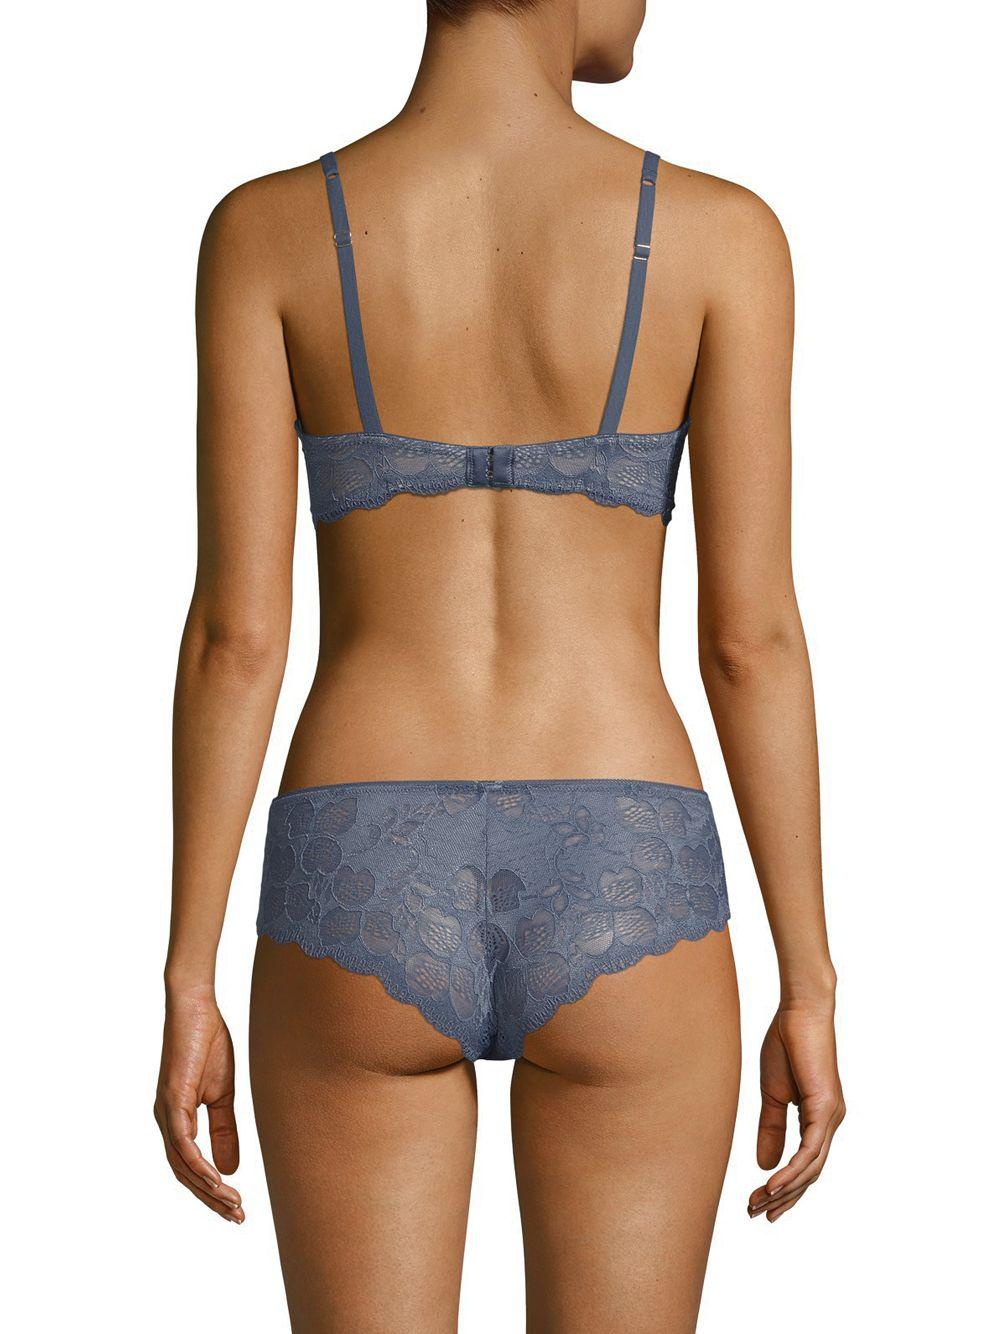 7caa687570 Lyst - Addiction Nouvelle Lingerie Sweethearts Lace Bra in Blue